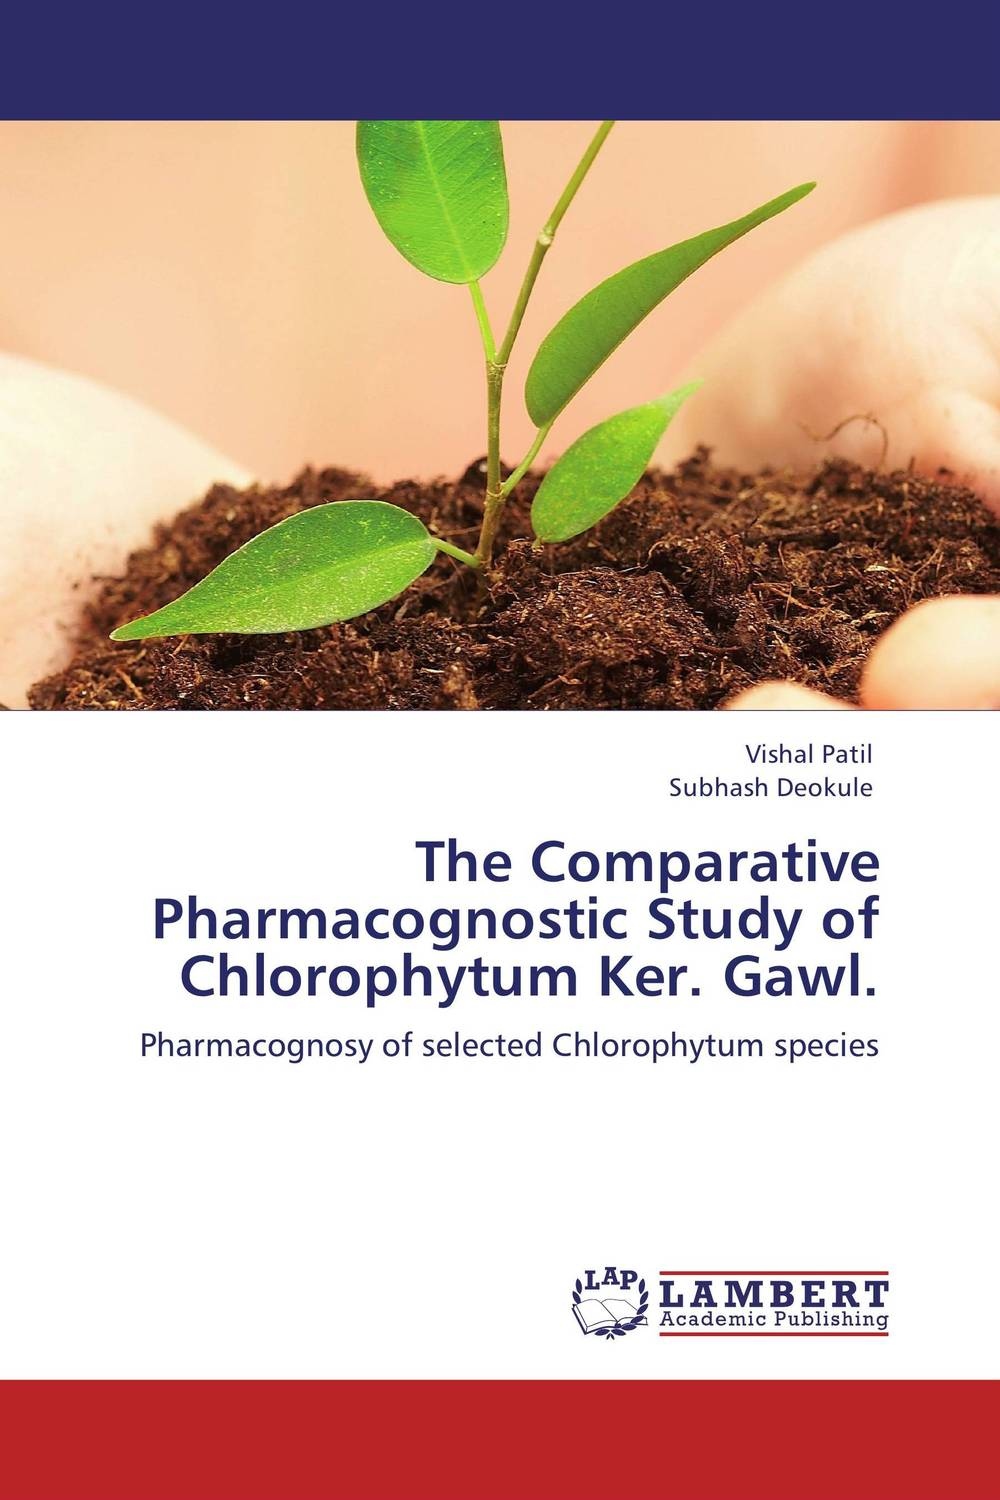 The Comparative Pharmacognostic Study of Chlorophytum Ker. Gawl. pharmacognostic study of nigerian herbal drugs of importance